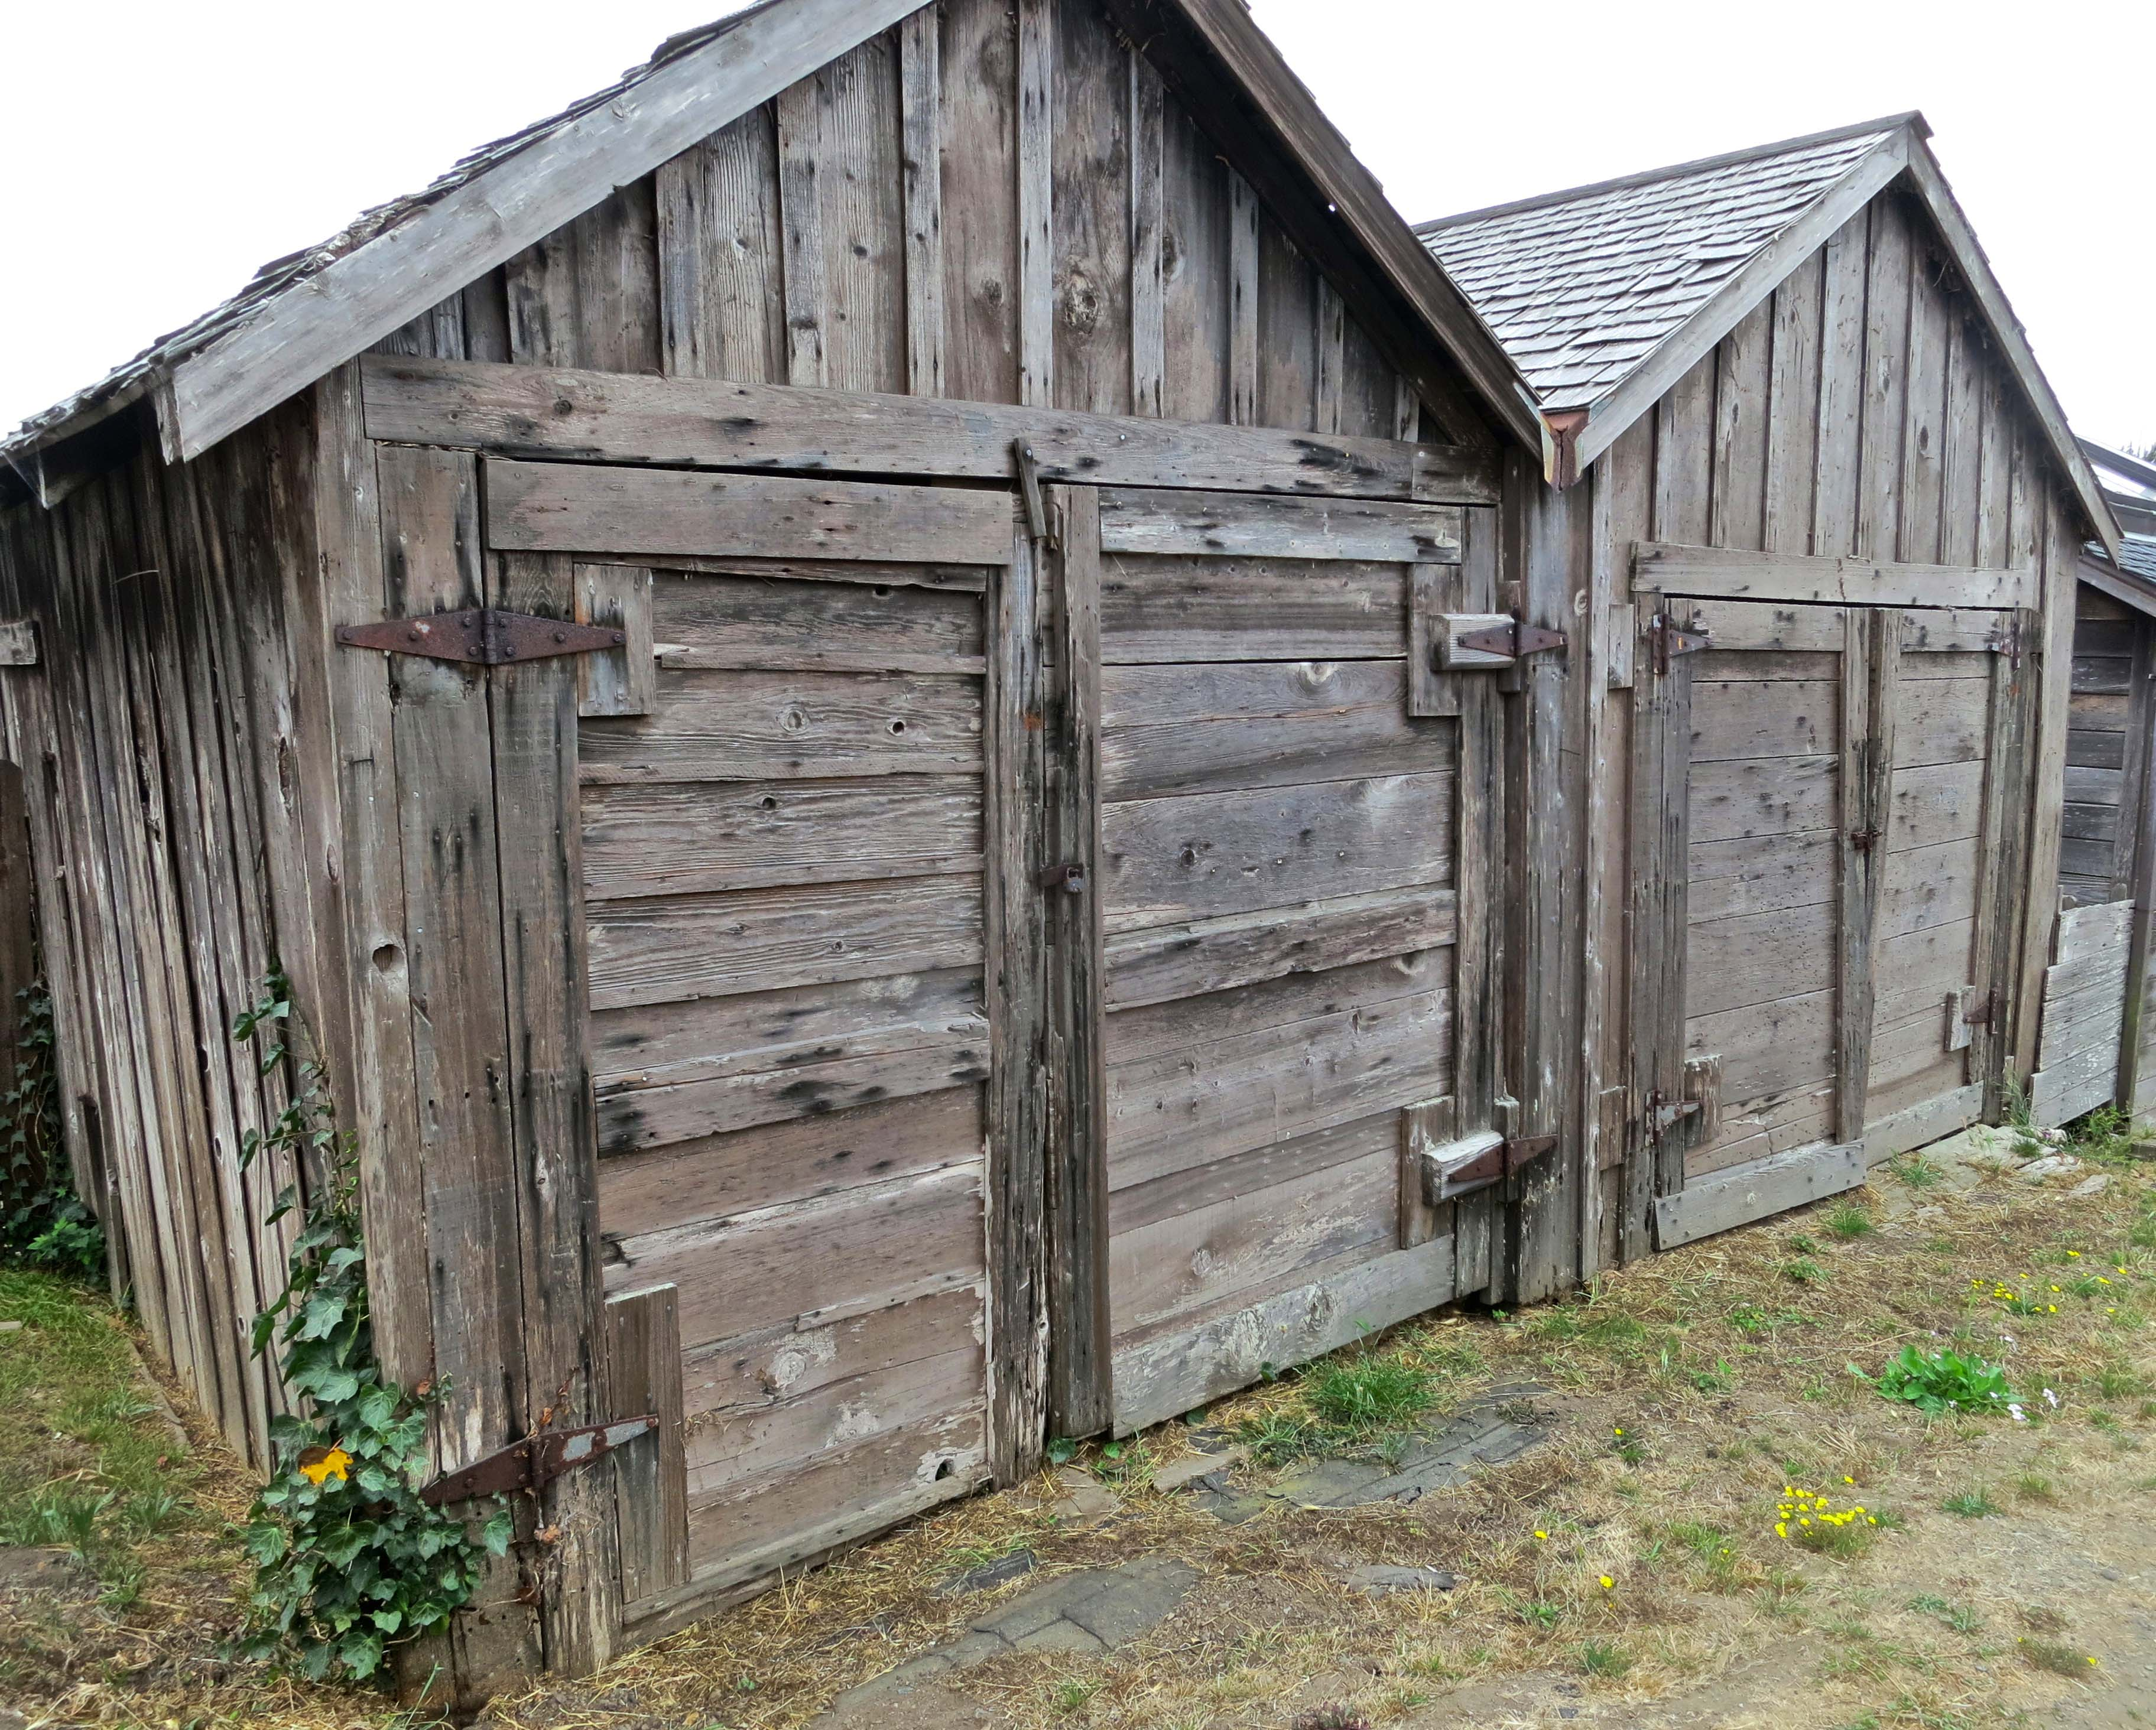 old two car garage in mendocino wandering through time and place published december 18 2015 at 3648 2928 in